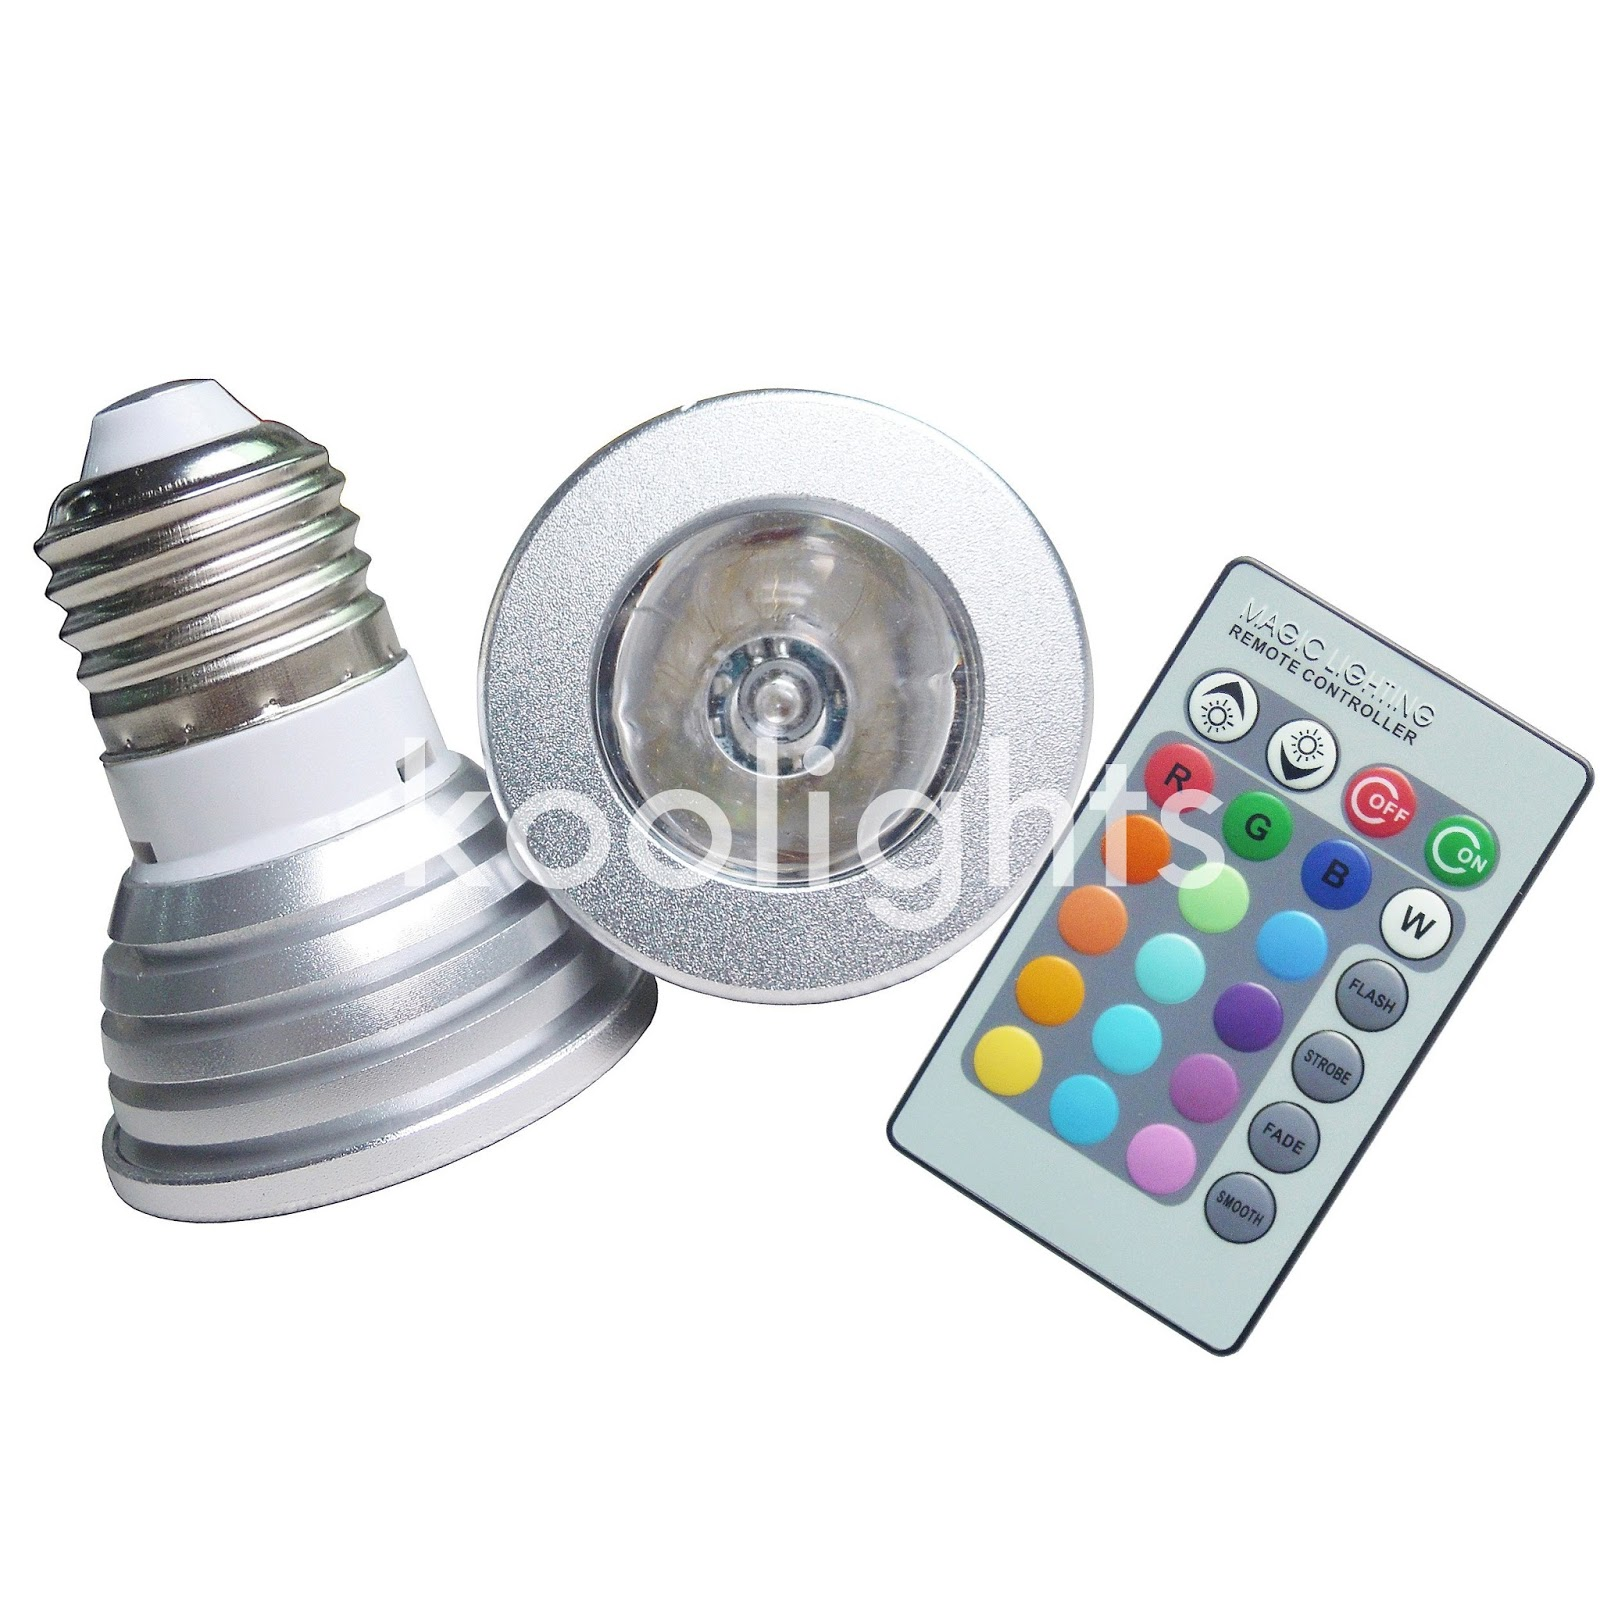 Koolights lamps ready made 3 watts led bulb with remote control 10 parisarafo Images